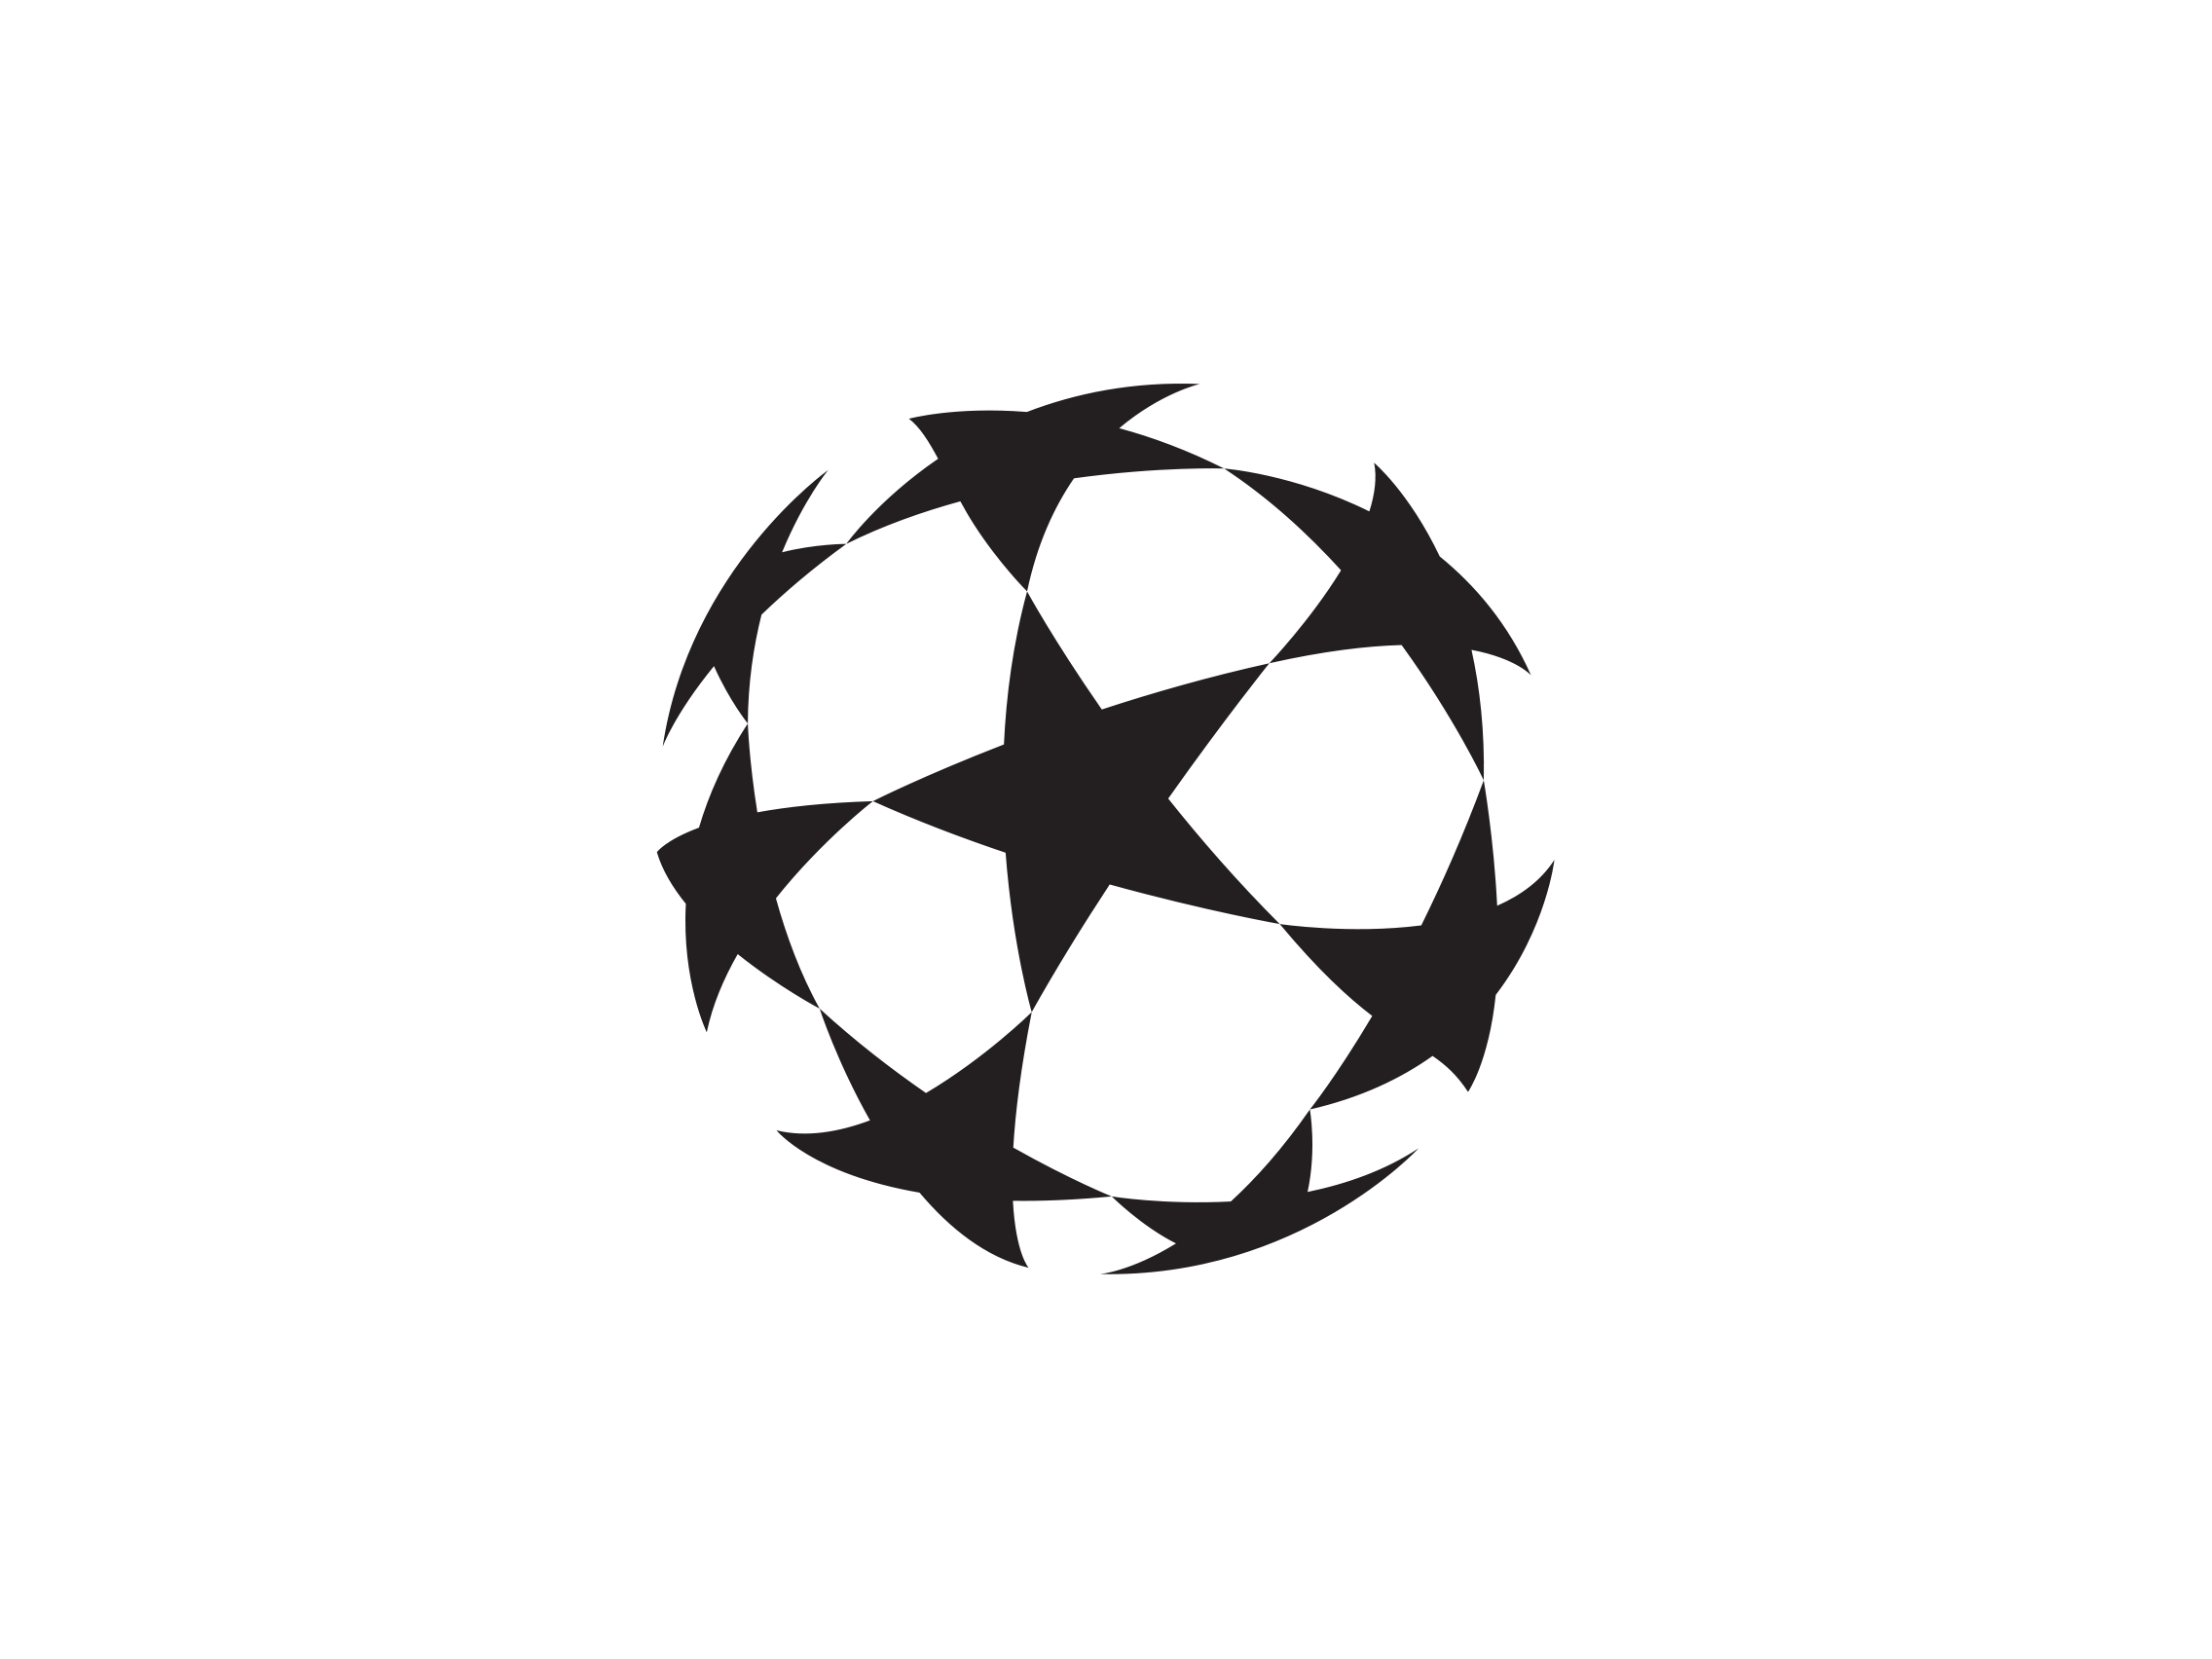 Champions League Logo Png